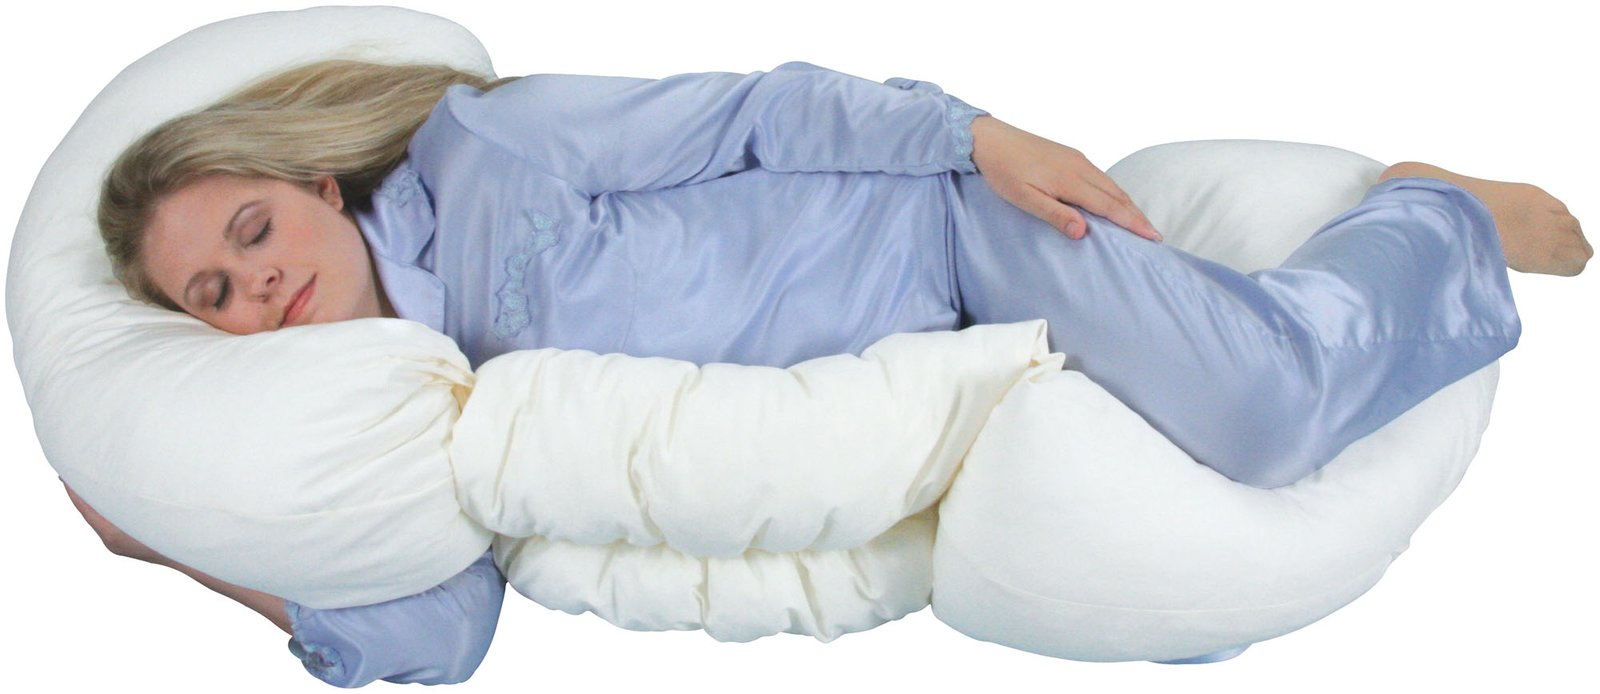 Best Pregnancy Body Pillow A Very Cozy Home